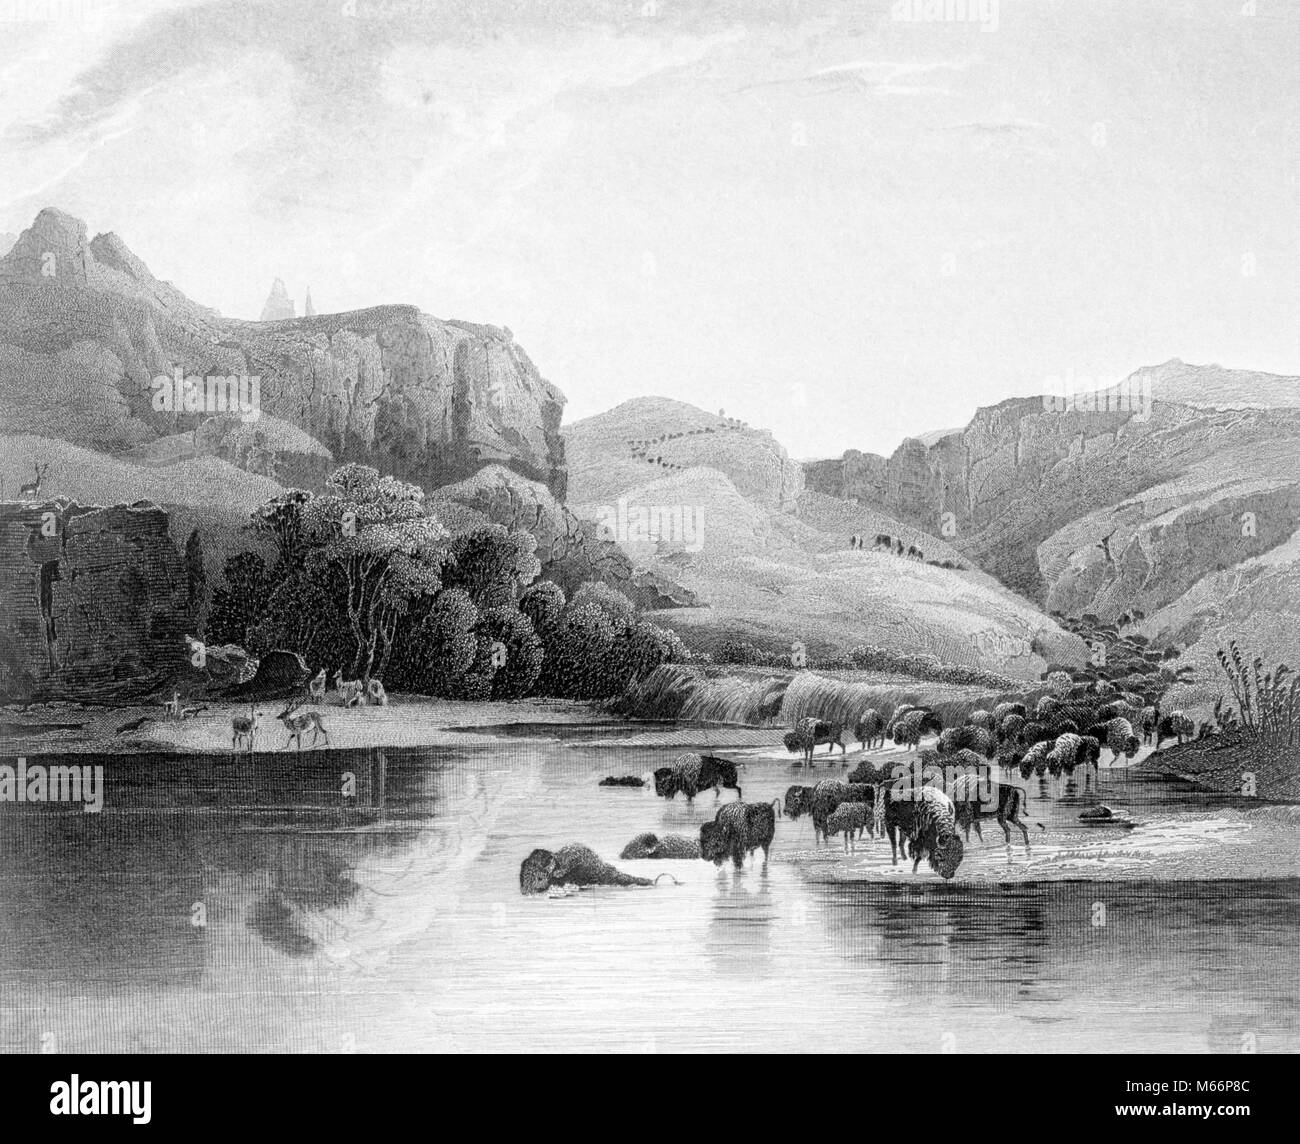 1800s 1830s HERDS OF BISON AND ELK CROSSING THE UPPER MISSOURI RIVER IN THE AMERICAN WEST - q61260 CPC001 HARS UPPER - Stock Image